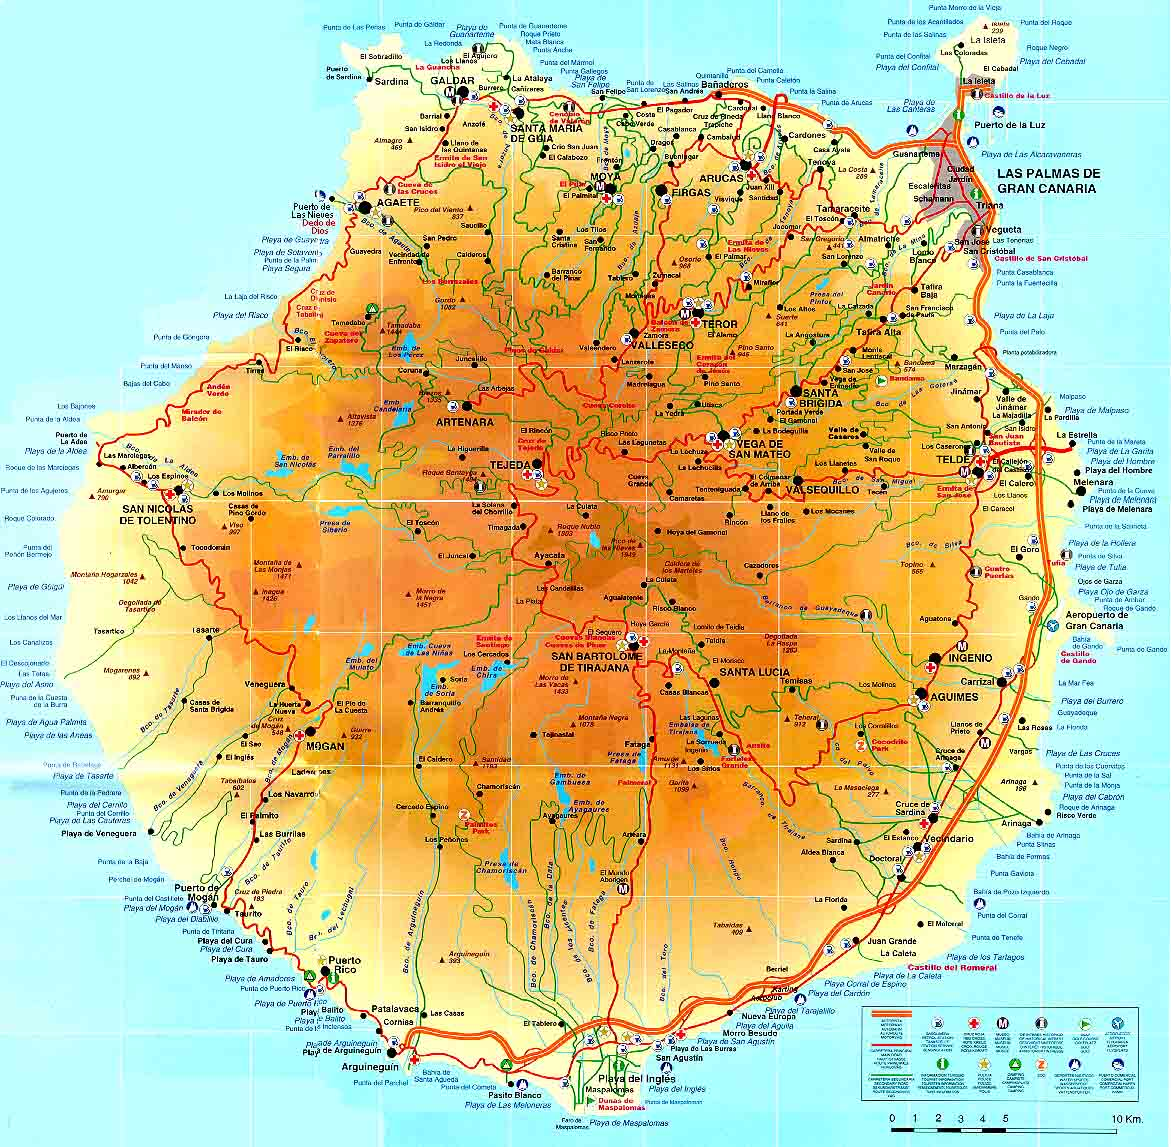 goggle maps 3d with Gran Canaria Viavakantie on Details additionally 2181941160 also Cubal Angola Mapa additionally Details additionally Nowe Obrazy W Google MapsEarth 8211 Pierwsze.